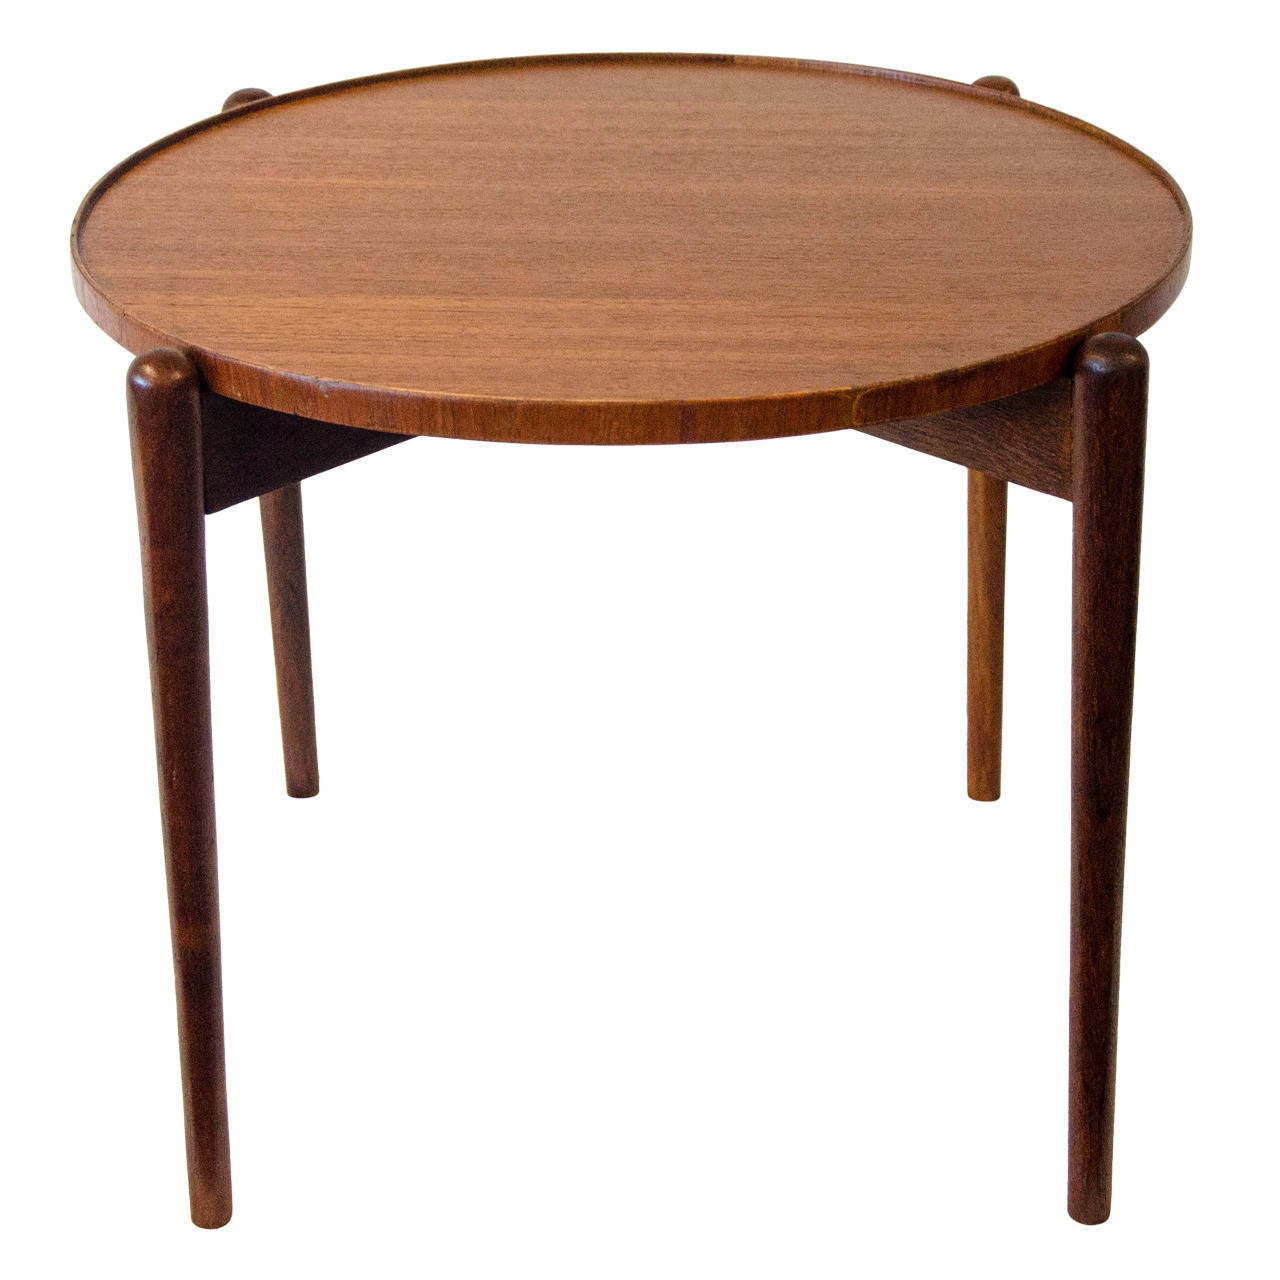 Small round teak accent table at 1stdibs for Accent furnitureable